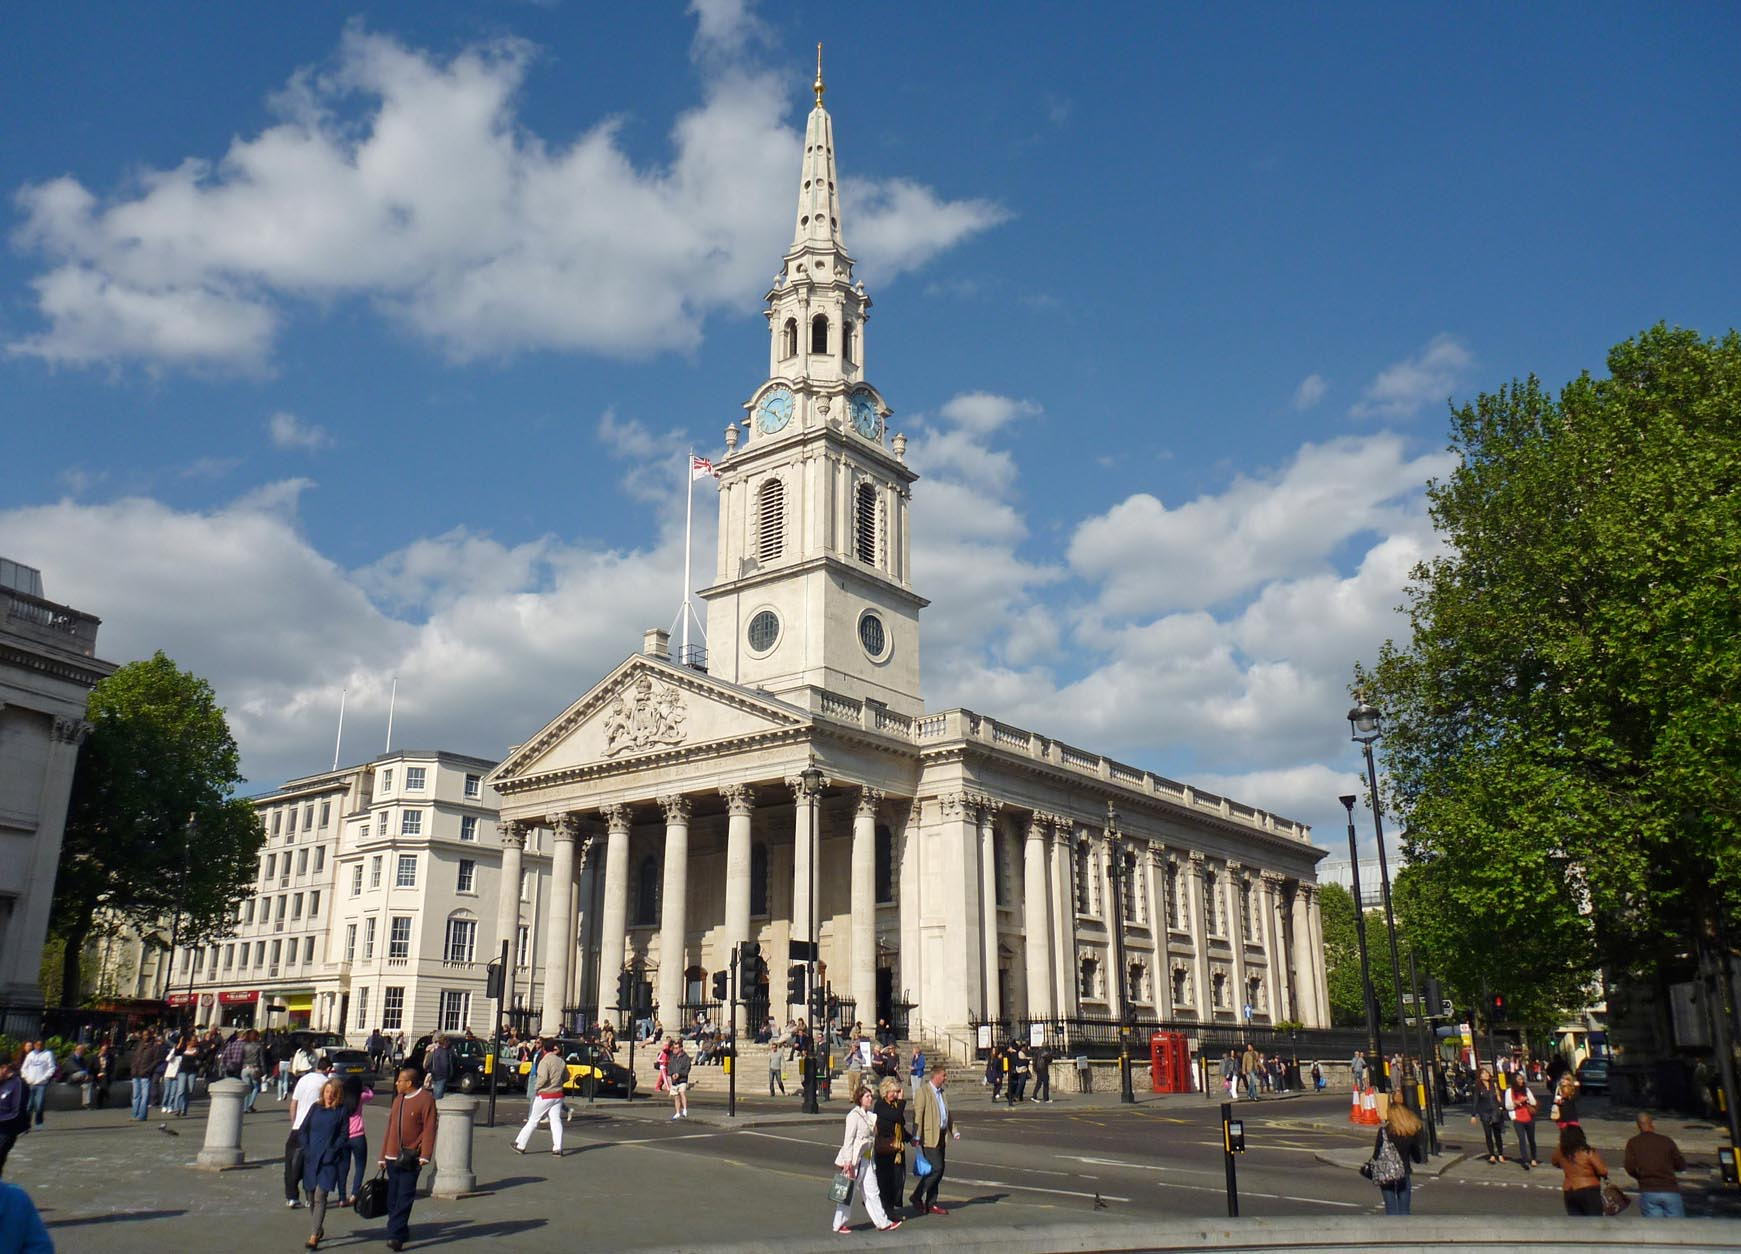 St martins in the fields cryptogram